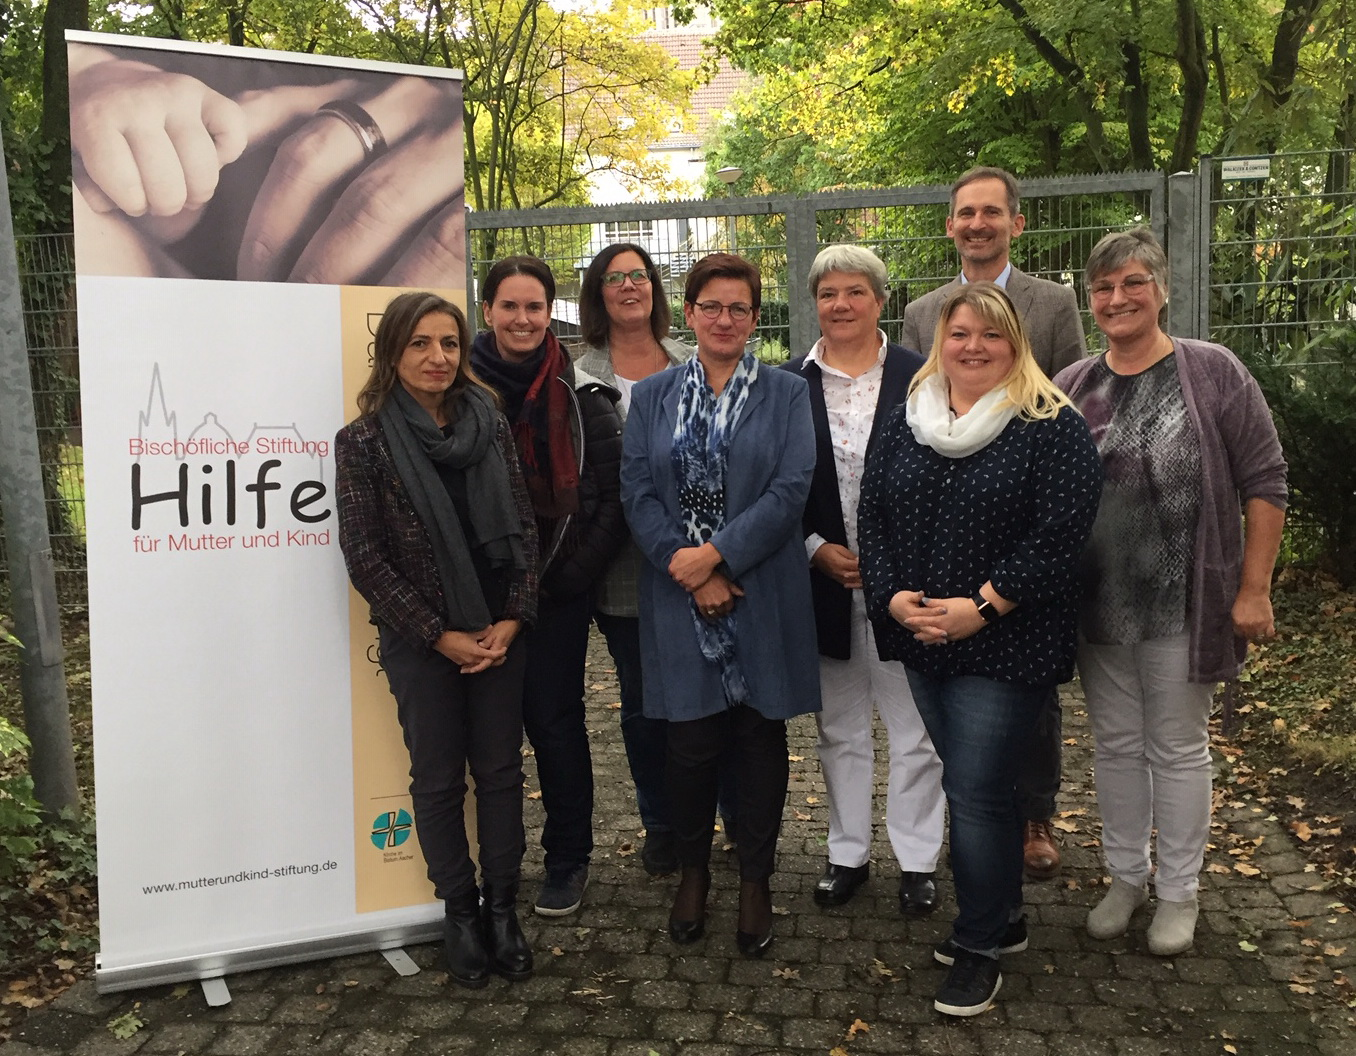 FH Stiftung MUK